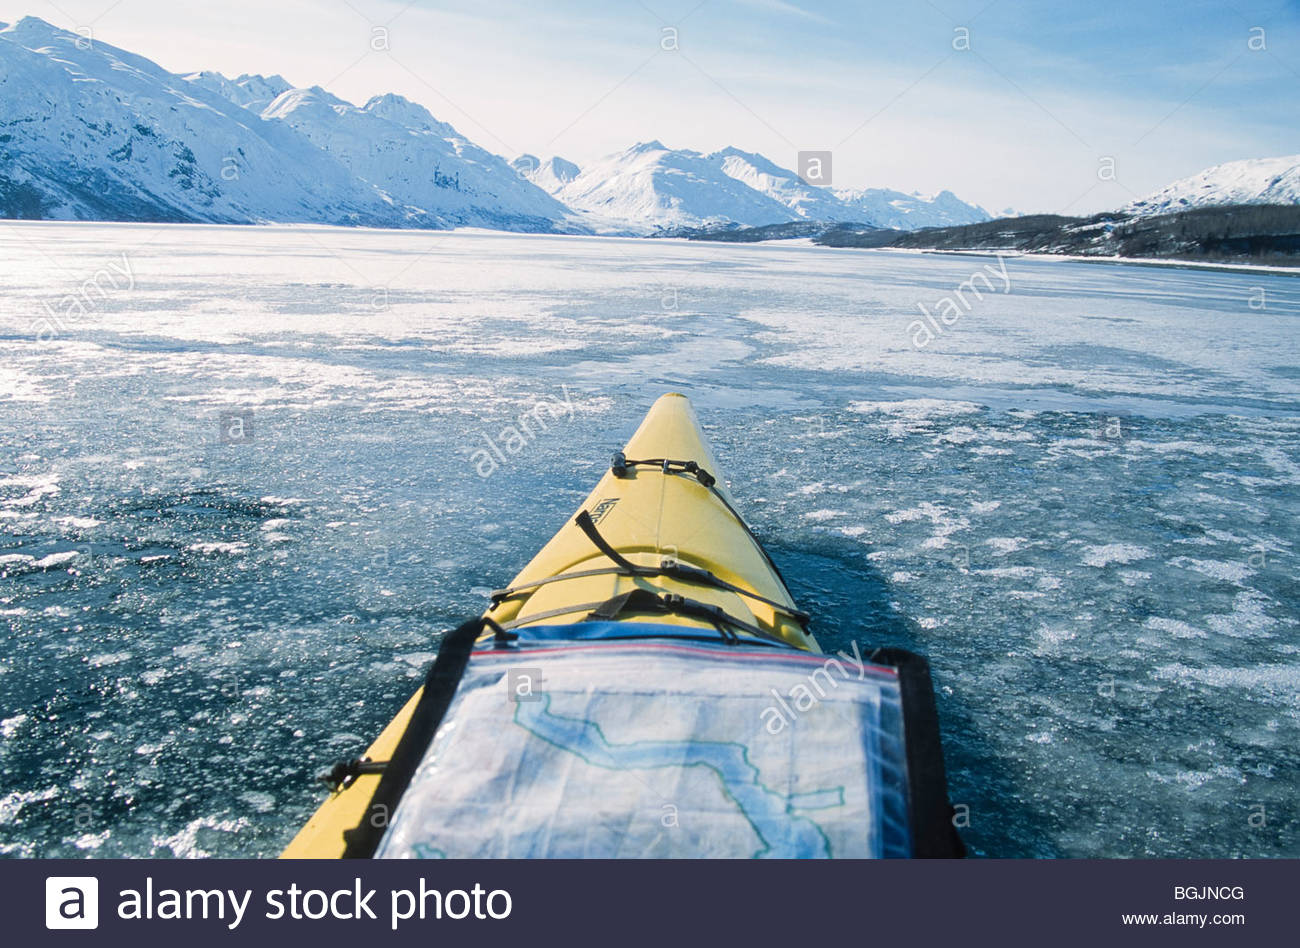 Alaska. Glacier Bay NP. Using a USGS Topo map to navigate an icy path in Glacier Bay. - Stock Image